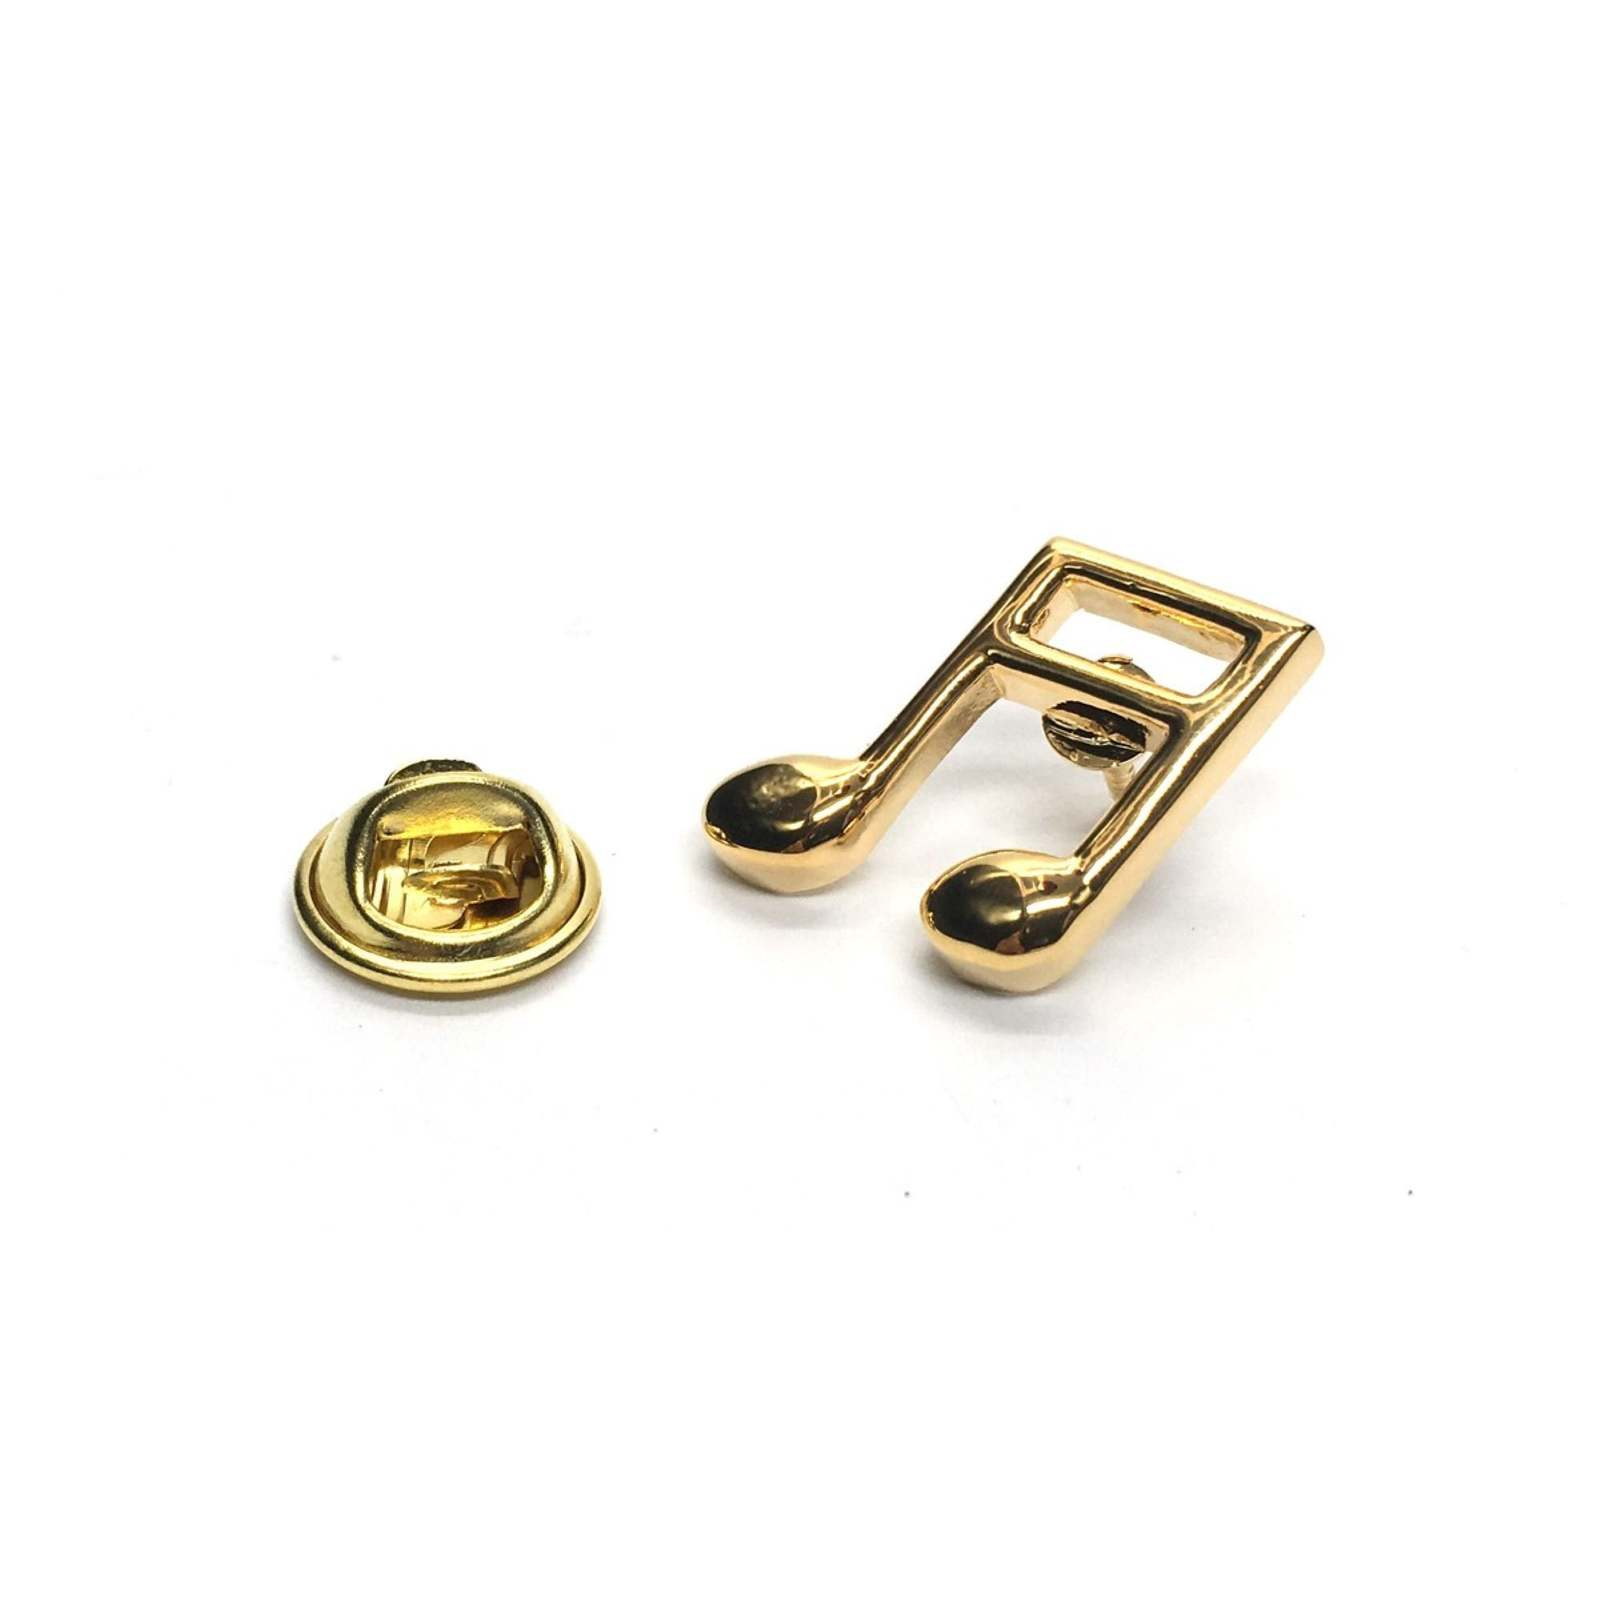 Quaver Music Note Gold  tie pin, Lapel Pin Badge, in gift box detailed design